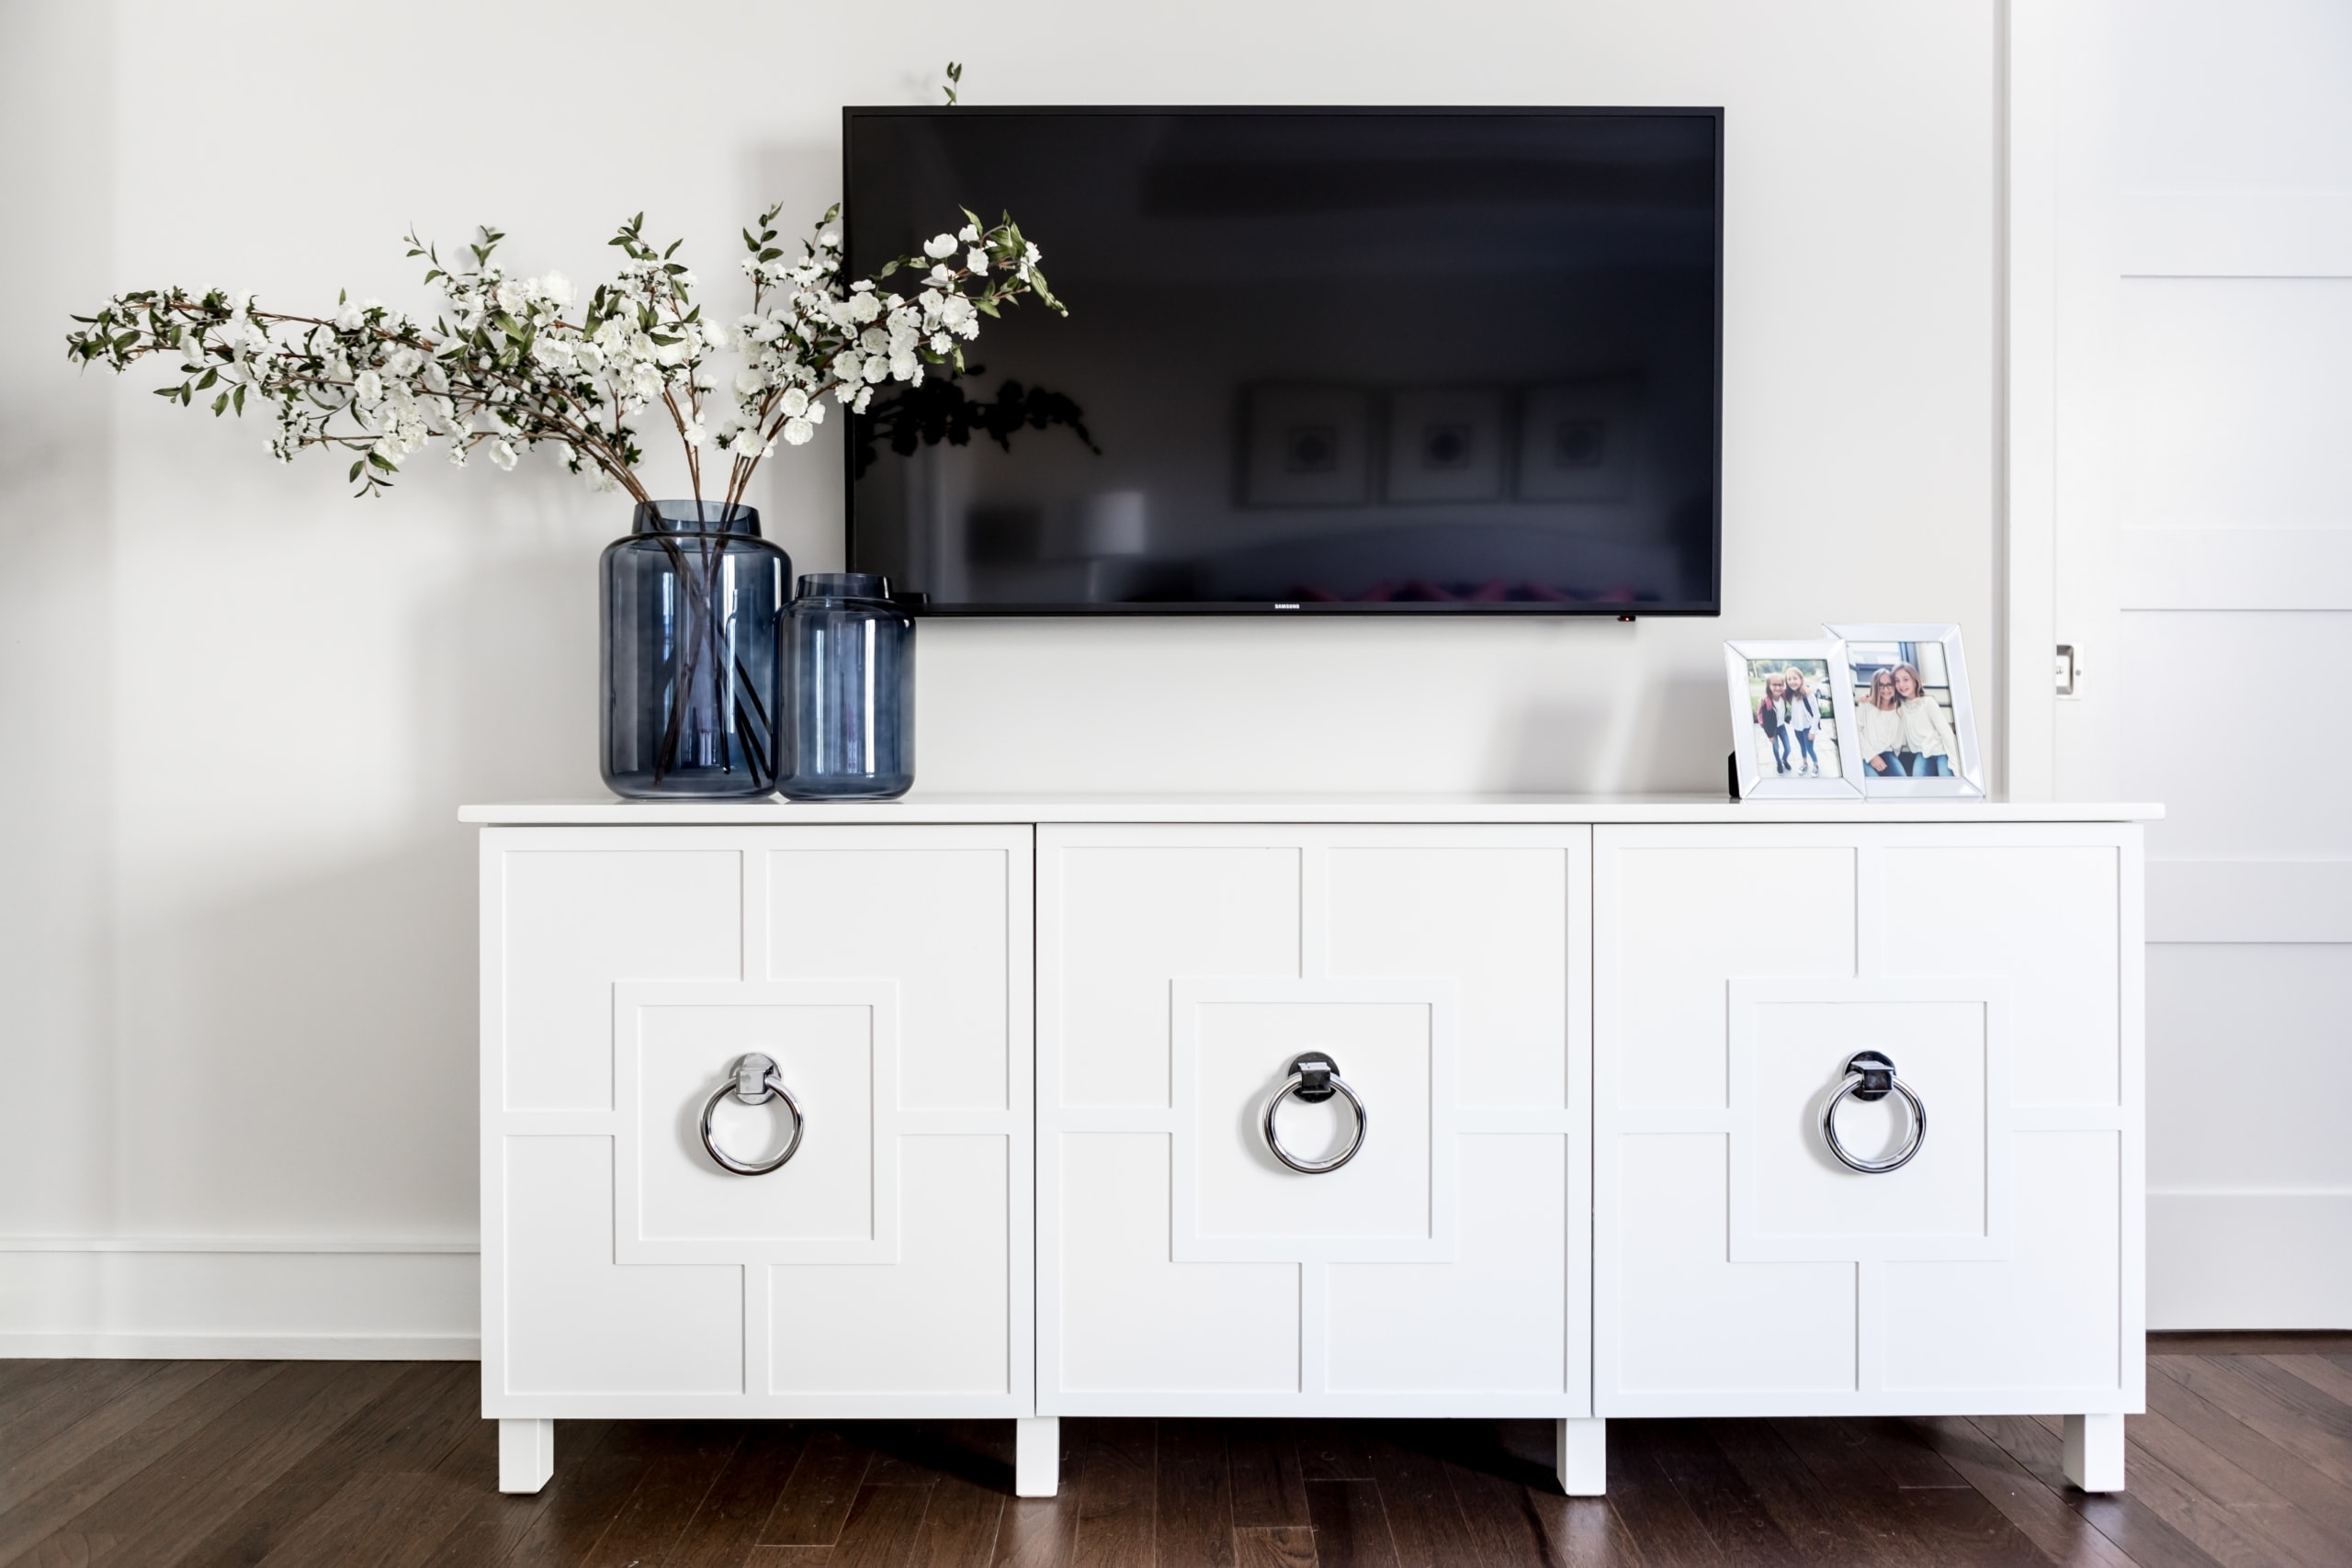 White cupboards under the television